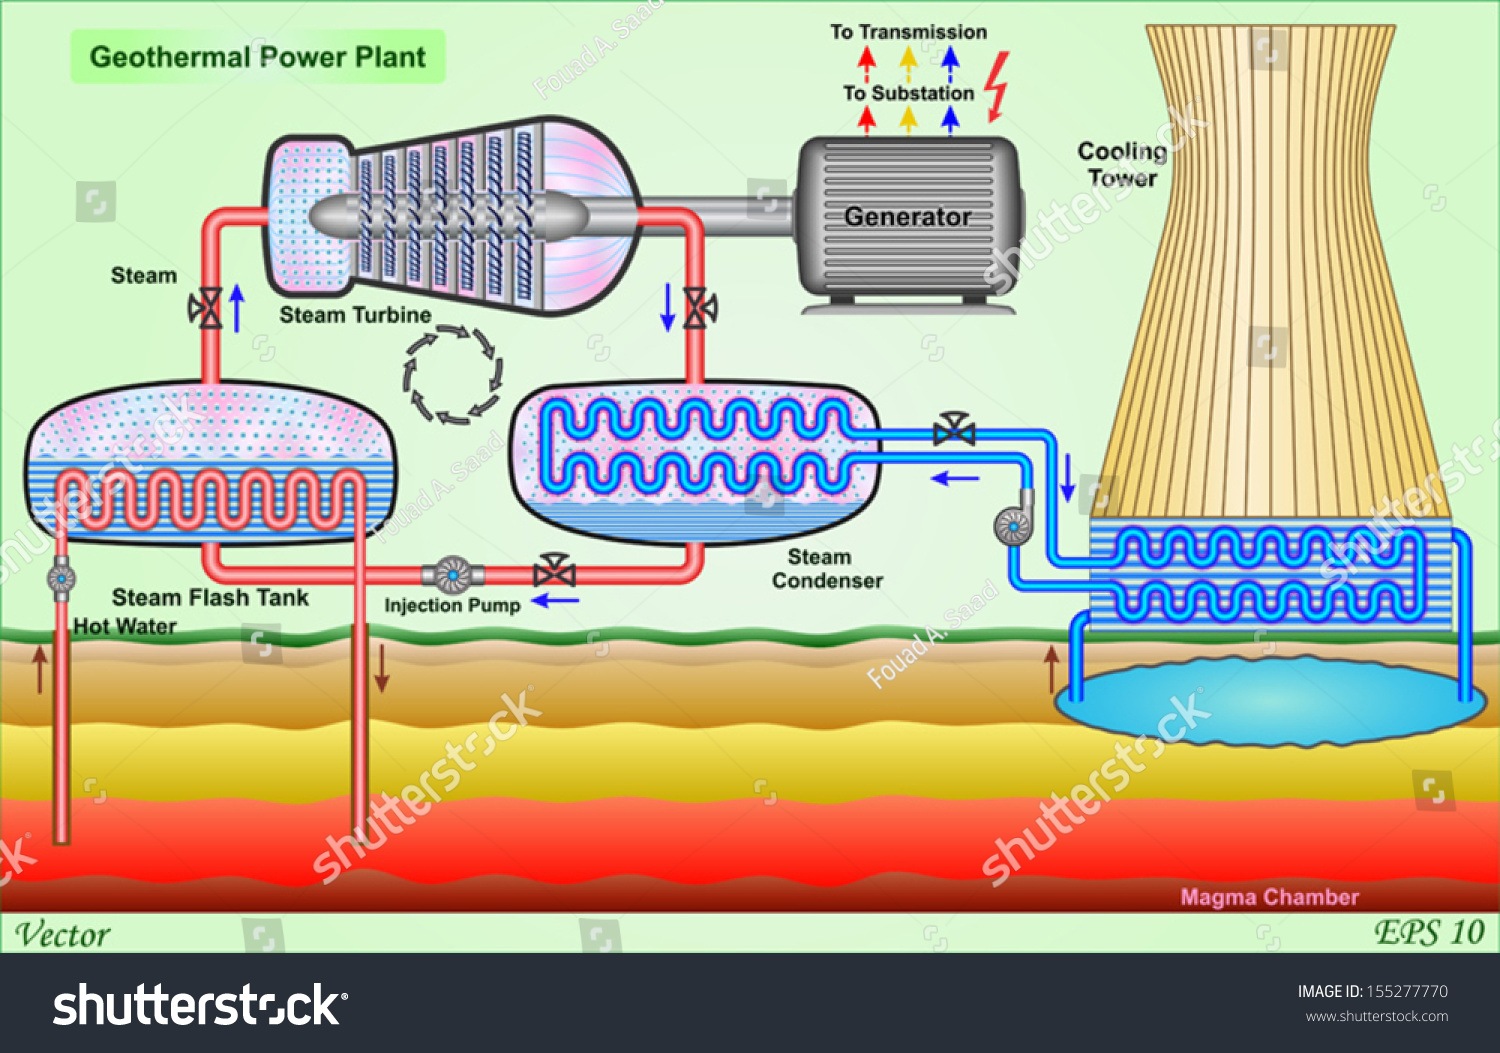 hight resolution of geothermal power plant 155277770